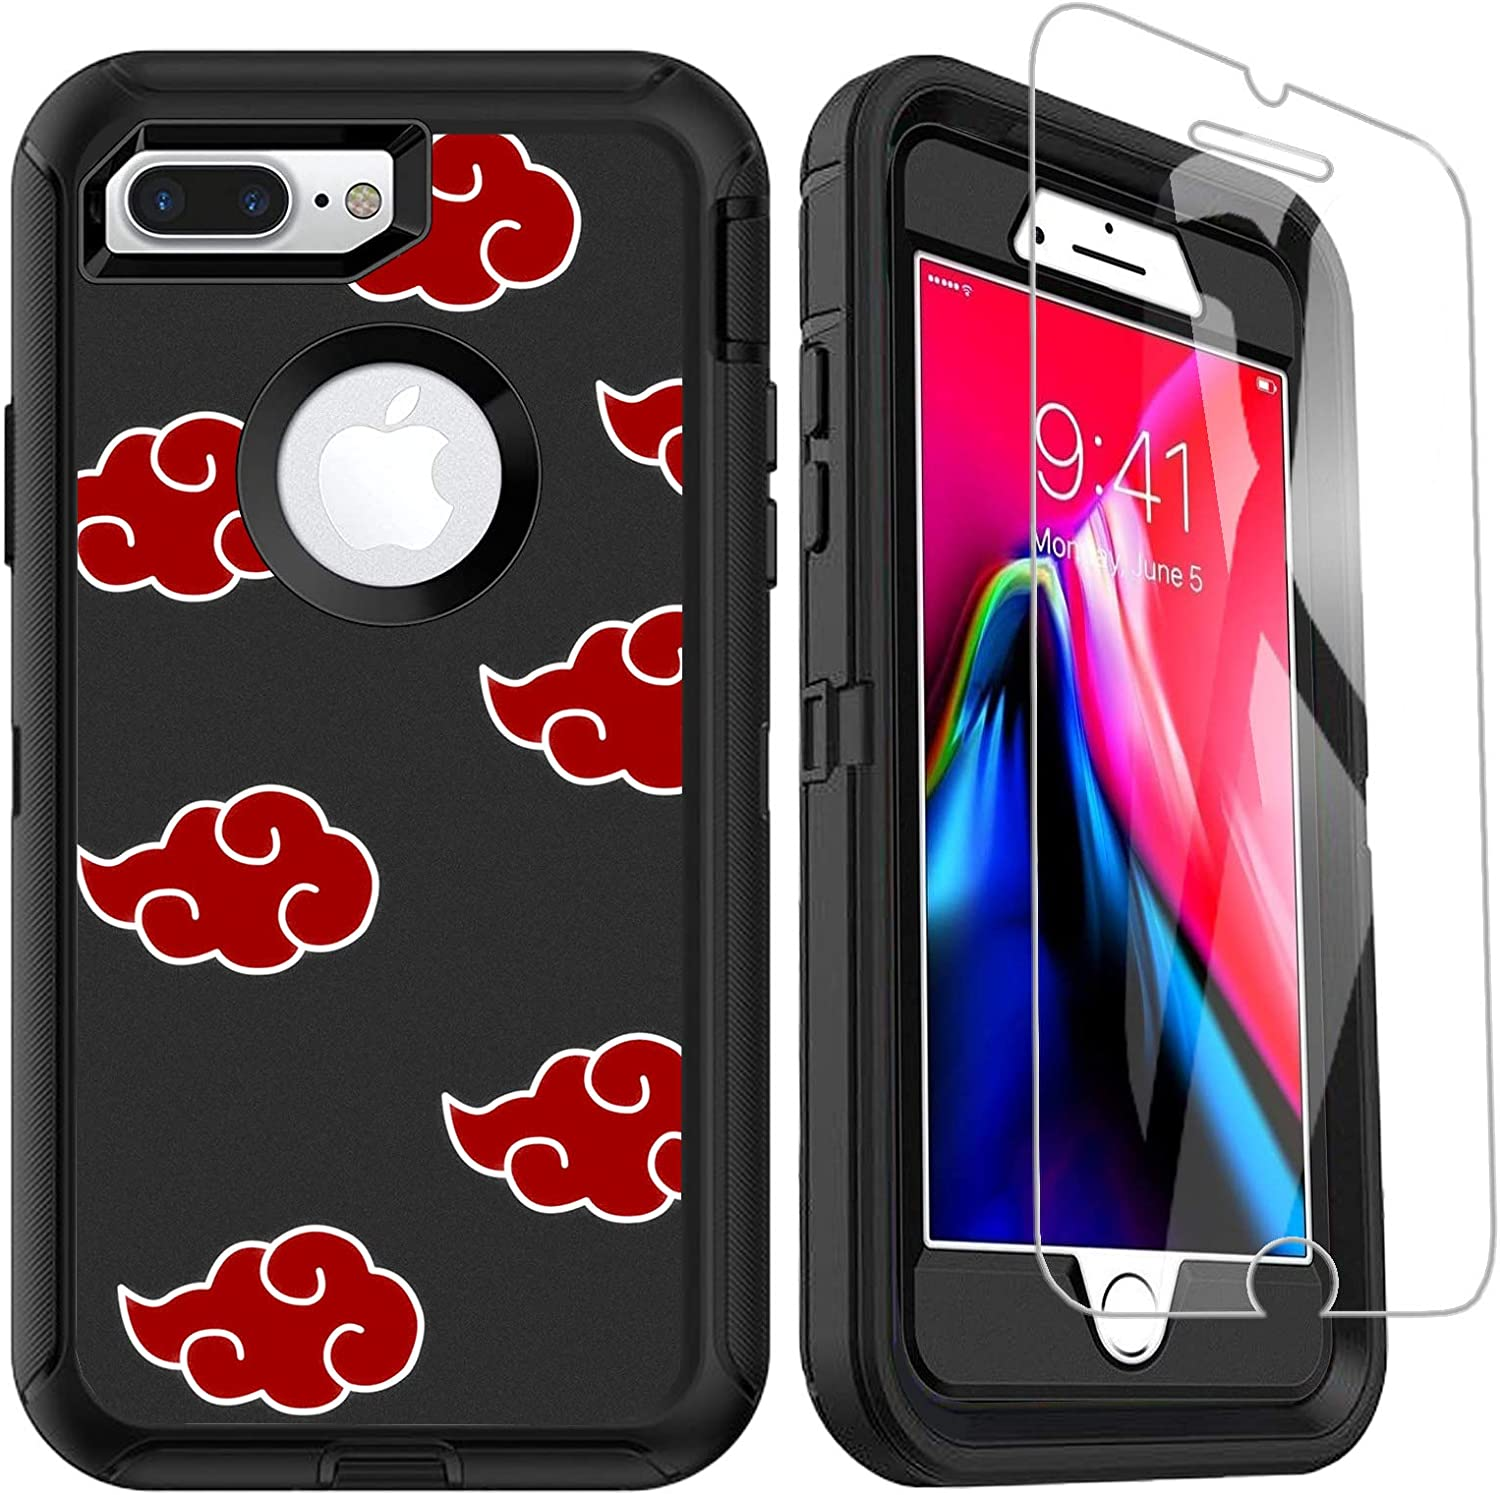 OTTARTAKS iPhone 7 Plus iPhone 8 Plus Case with Screen Protector, Anime iPhone 6/6S Plus Case for Boys Men, 3-in-1 Heavy Duty Full Body Shockproof Cover for iPhone 6s 7 8 Plus,Red Cloud